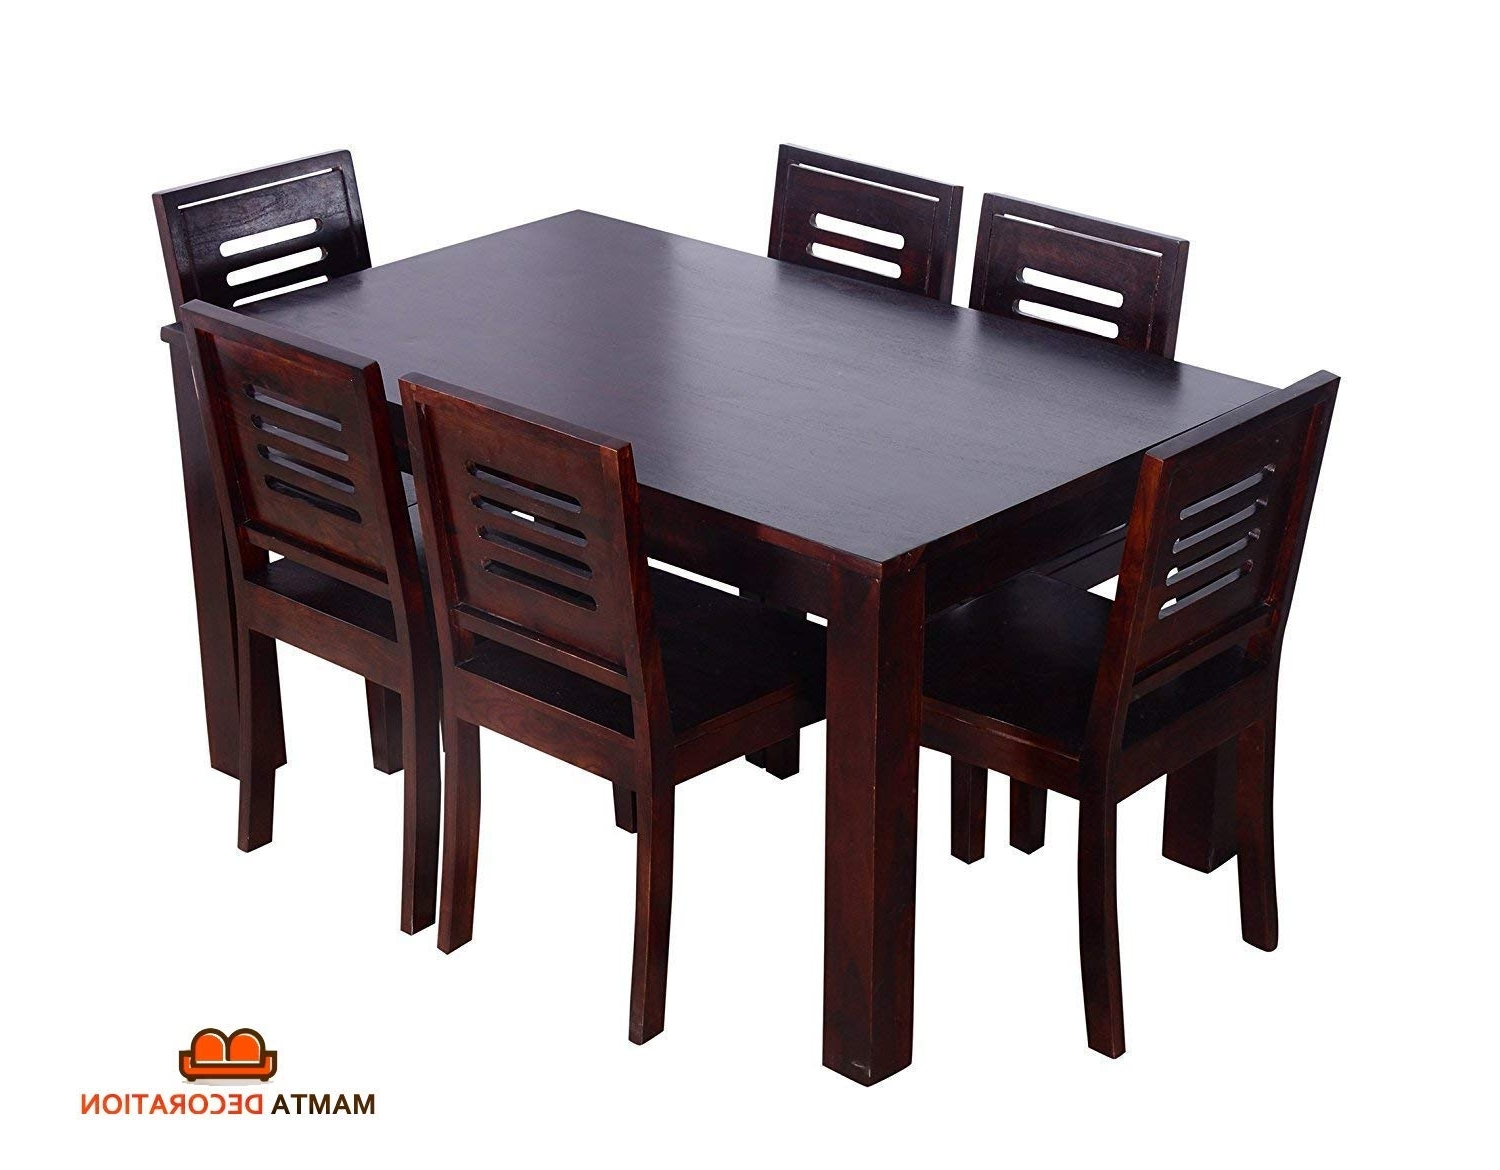 Mamta Decoration Sheesham Wood Wooden Dining Table With 6 Chairs Regarding Widely Used Sheesham Wood Dining Chairs (View 20 of 25)